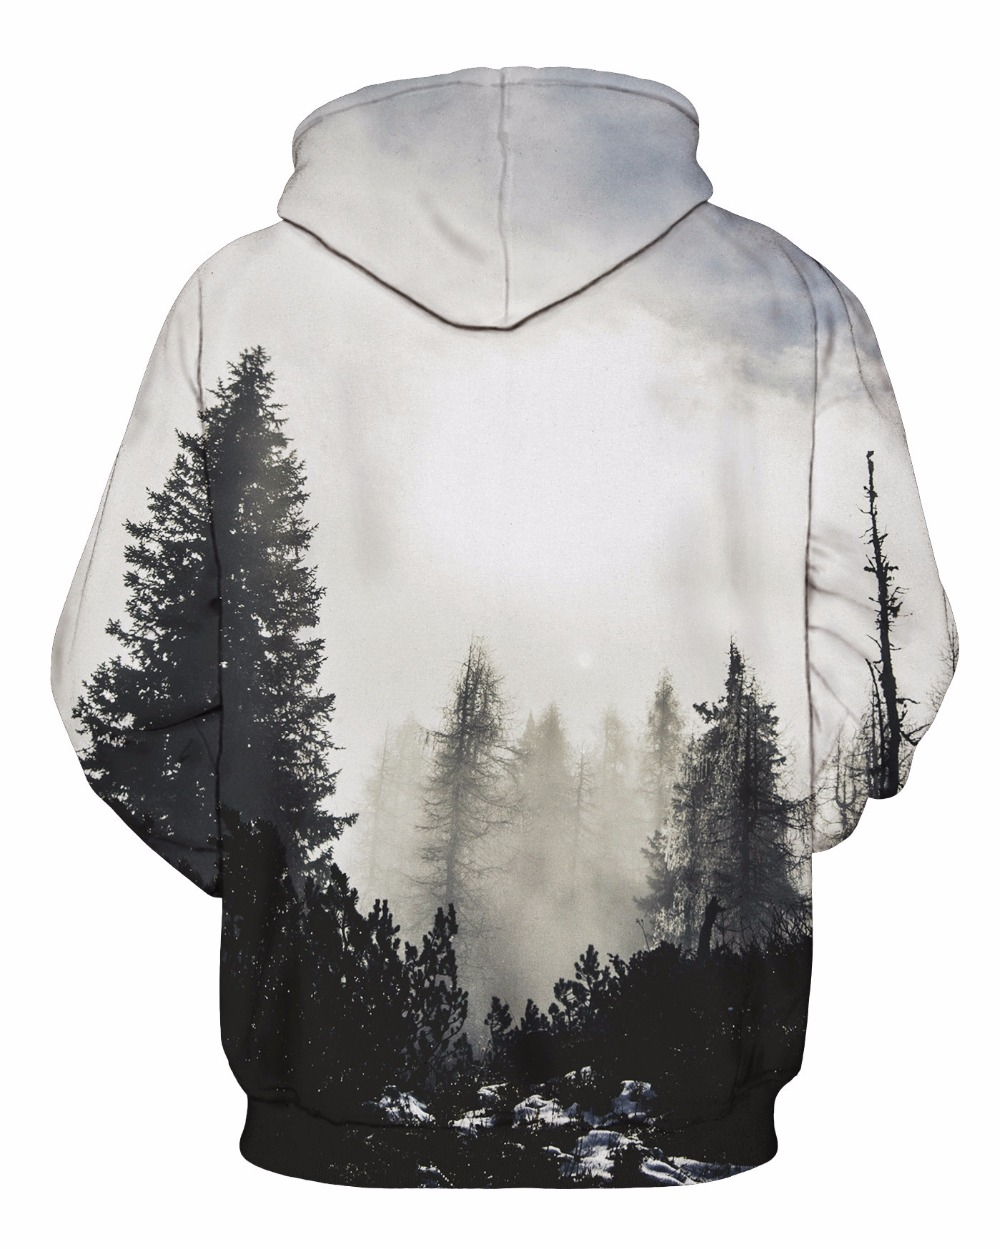 Wolf Printed Hoodies Men 3d Hoodies Brand Sweatshirts Boy Jackets Quality Pullover Fashion Tracksuits Animal Streetwear Out Coat 53